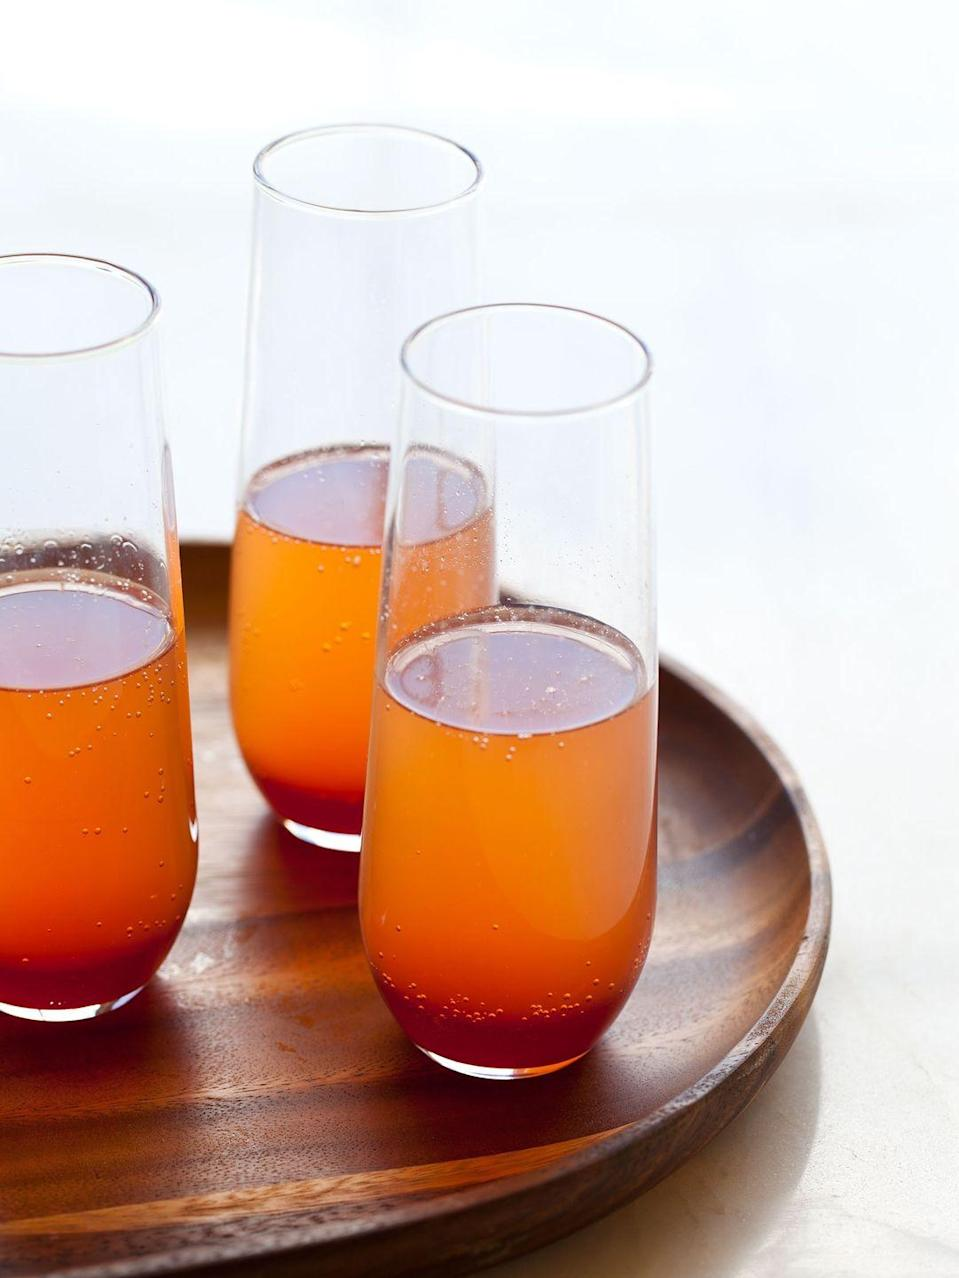 """<p>Make this drink the next star of your Sunday brunch lineup. With fresh blood orange juice, white wine and dry champagne, it's an elegant cocktail for any autumn occasion.<br></p><p><a class=""""link rapid-noclick-resp"""" href=""""http://www.spoonforkbacon.com/spice-blood-orange-champagne-punch/"""" rel=""""nofollow noopener"""" target=""""_blank"""" data-ylk=""""slk:GET THE RECIPE"""">GET THE RECIPE</a></p>"""